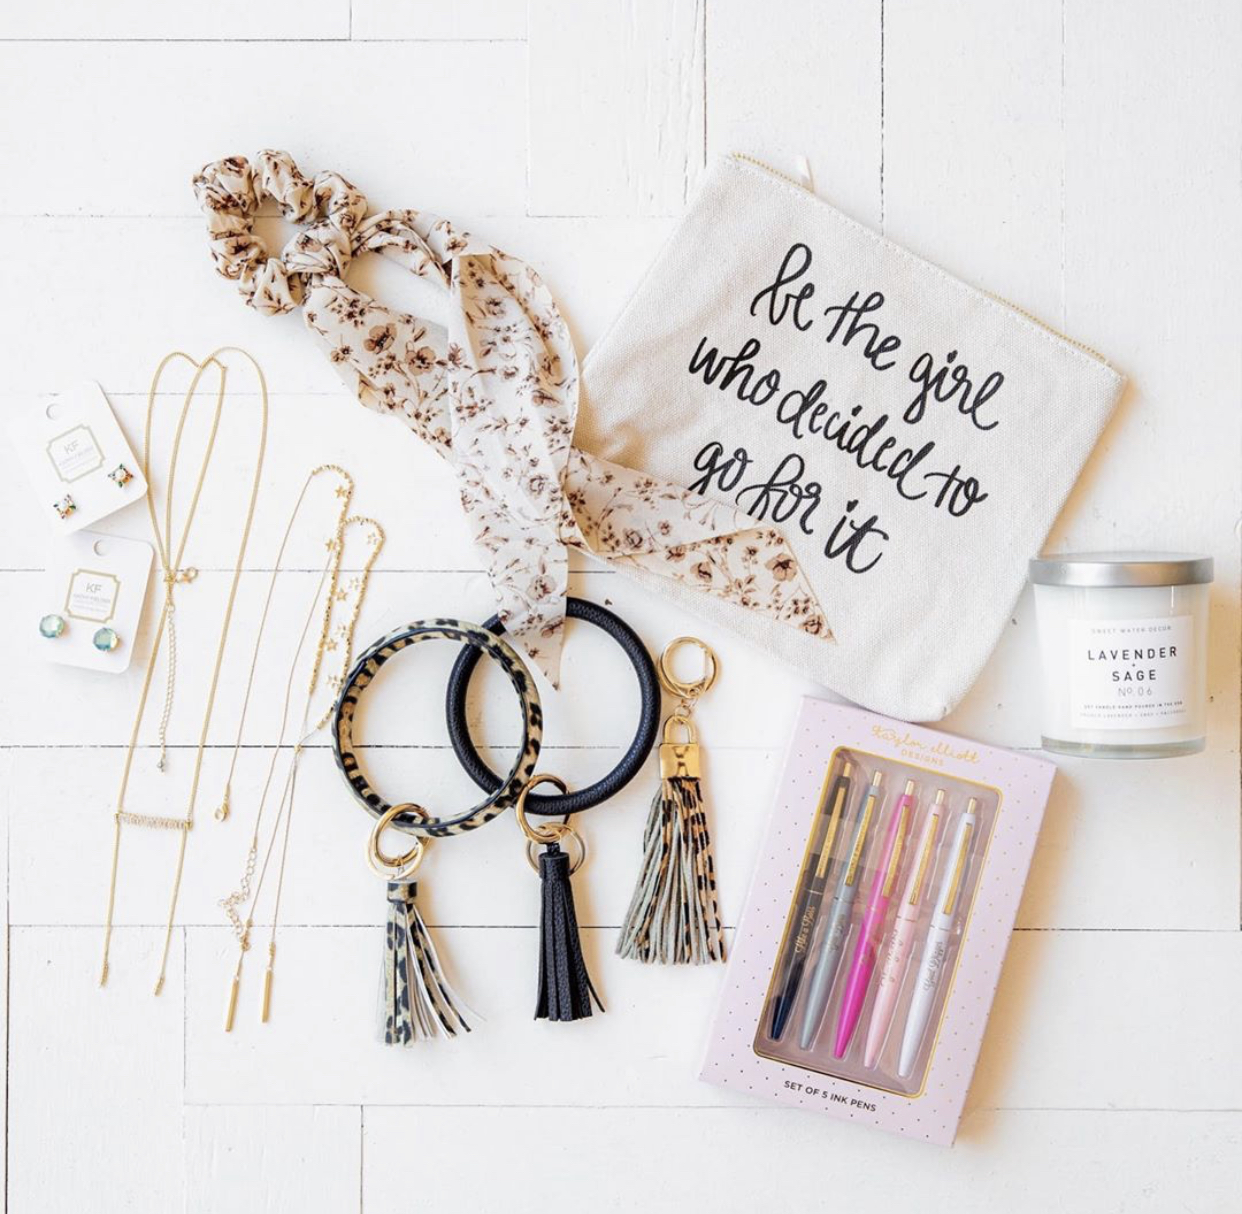 Kathy Fielder Design | Life | Style 2019 Gift Guide